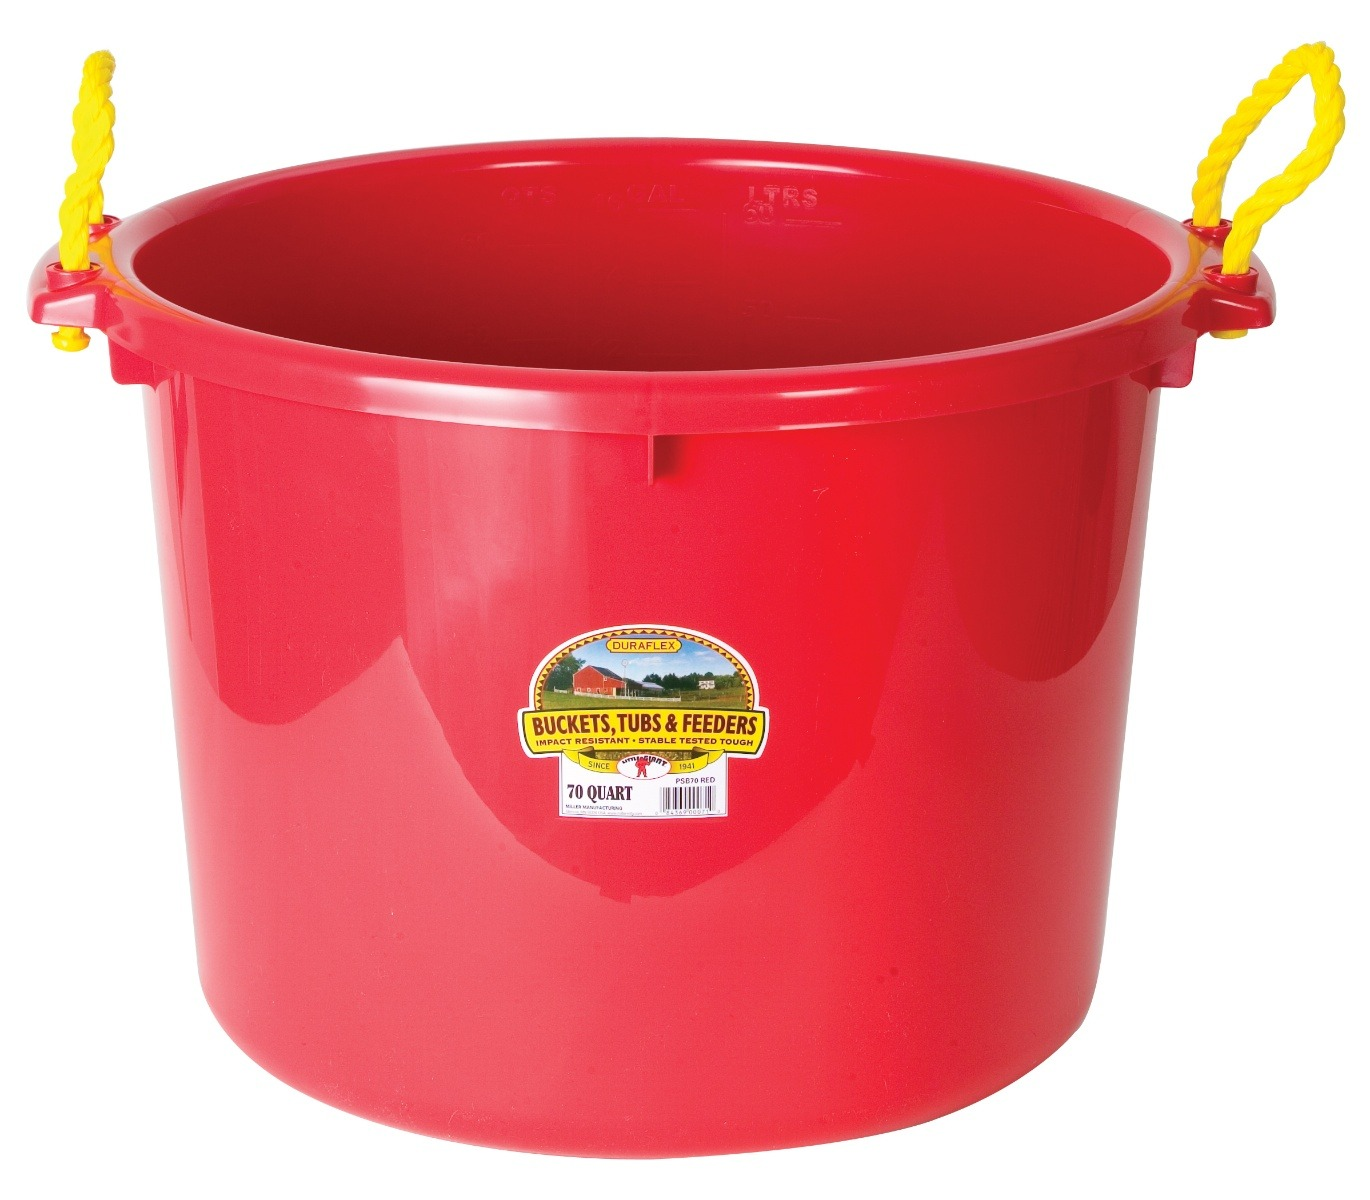 70 Quart Muck Bucket